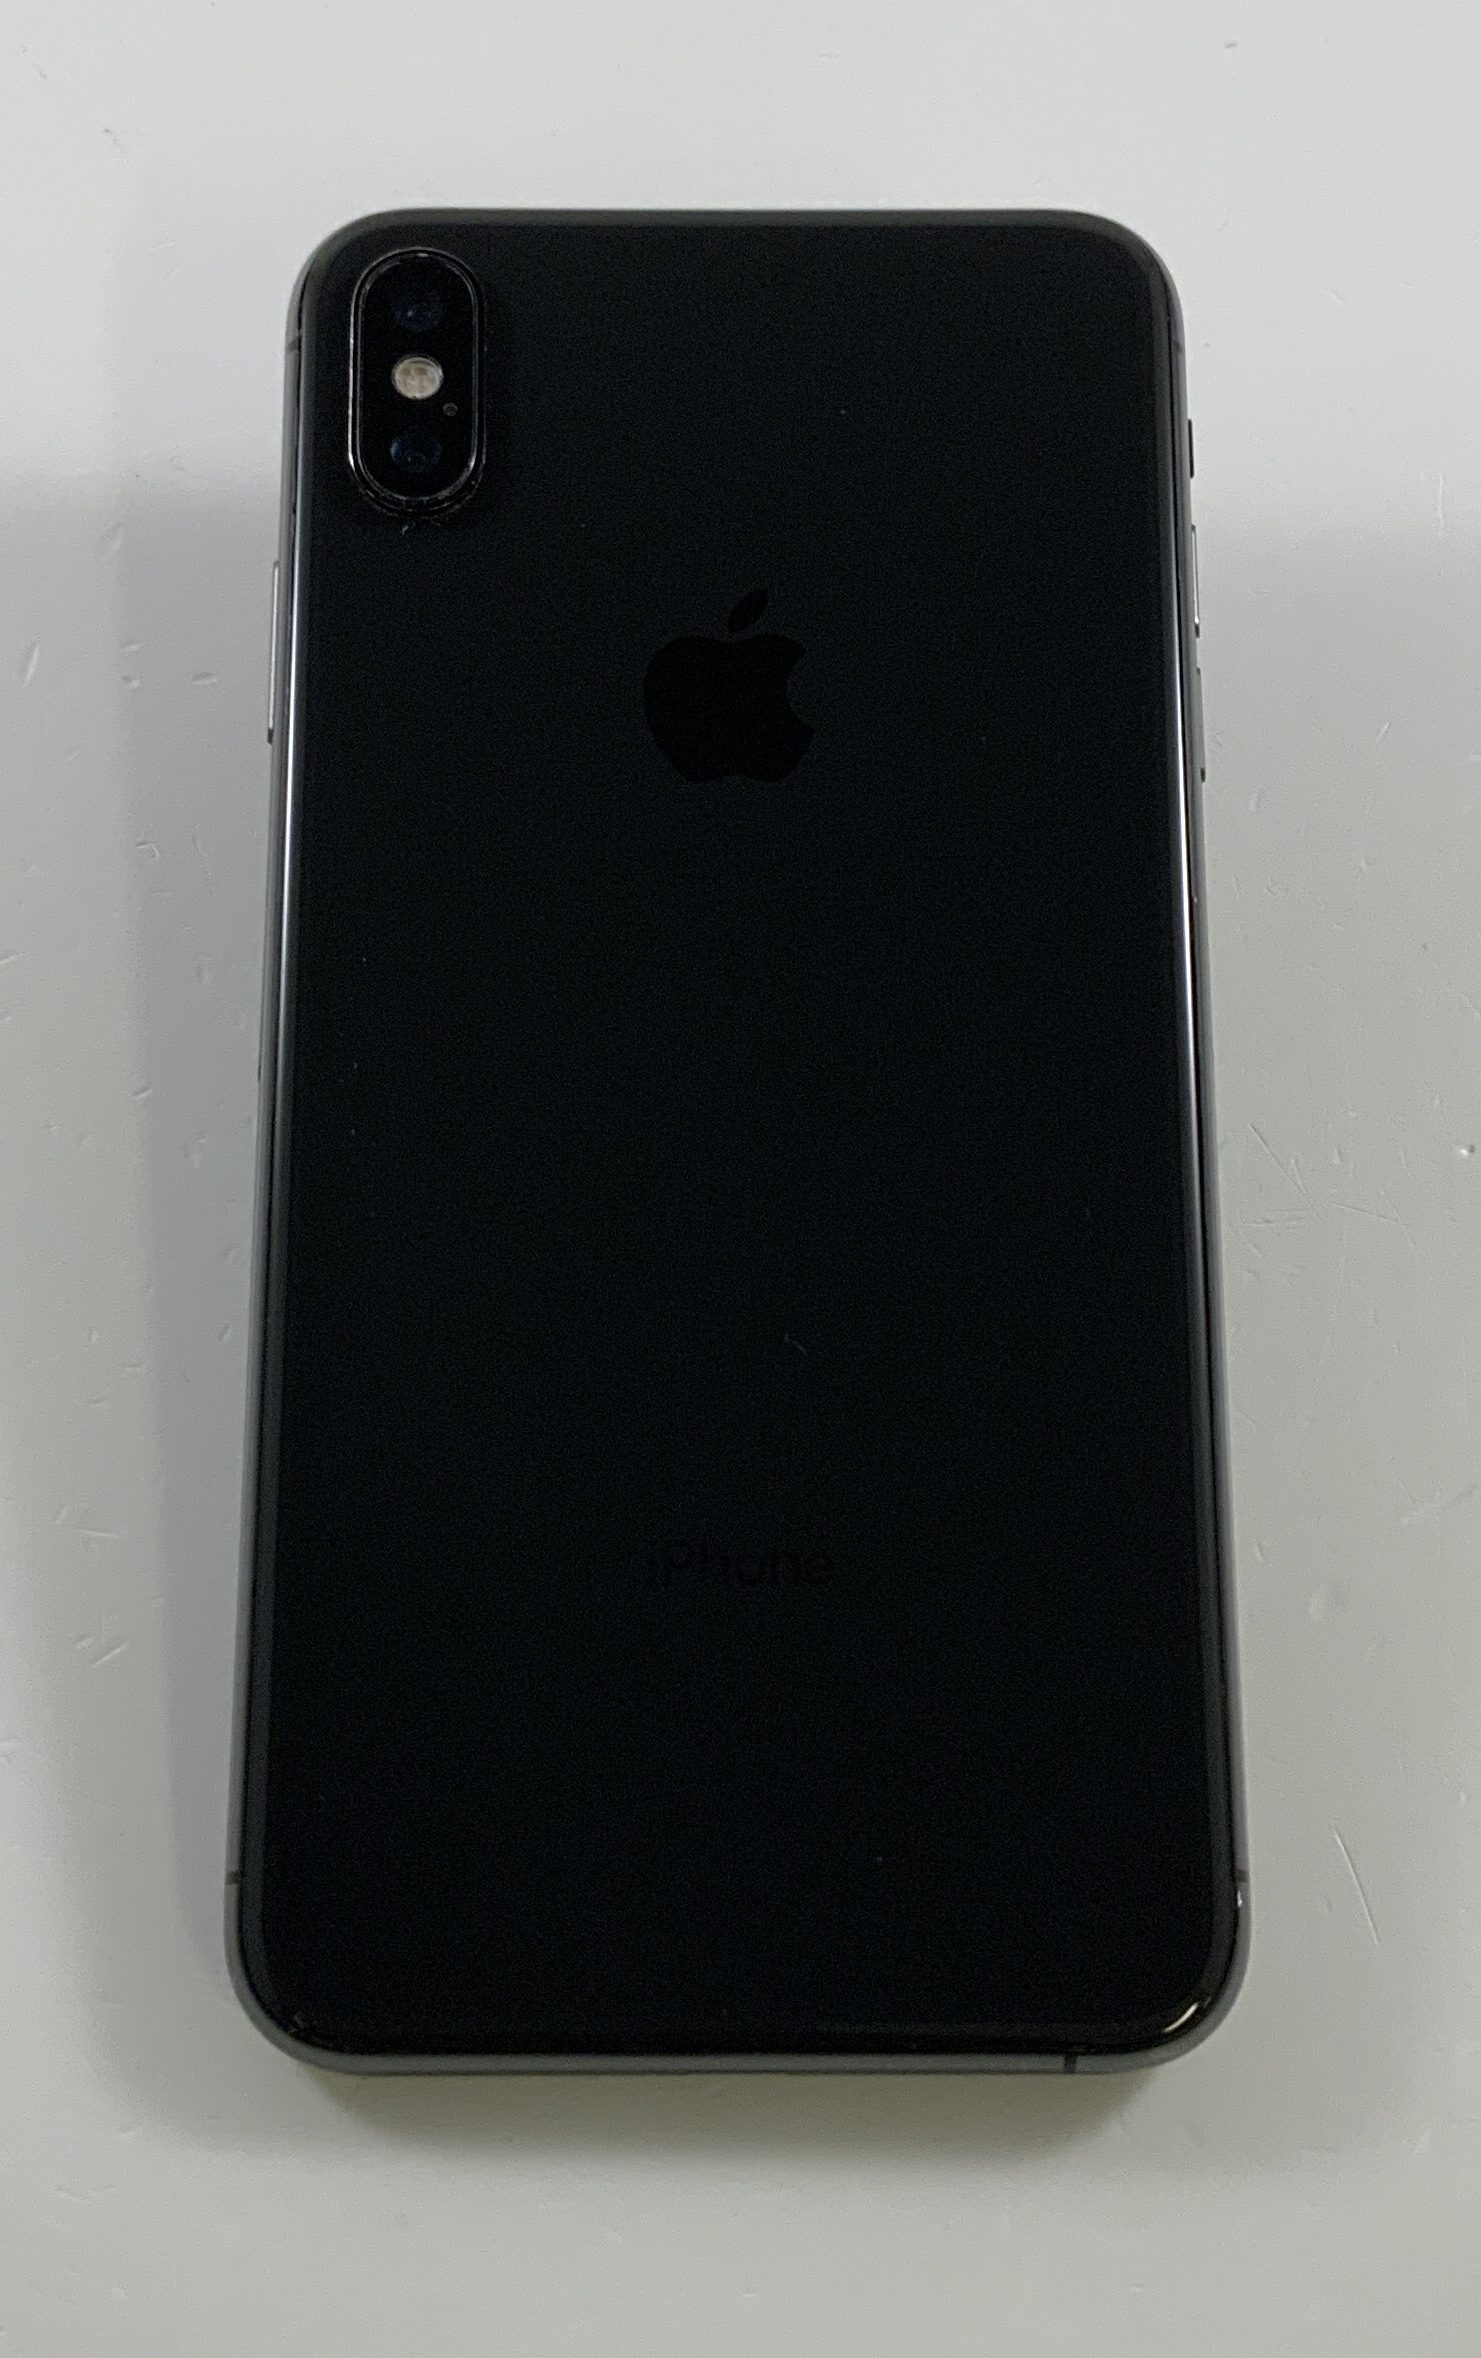 iPhone XS Max 64GB, 64GB, Space Gray, immagine 2